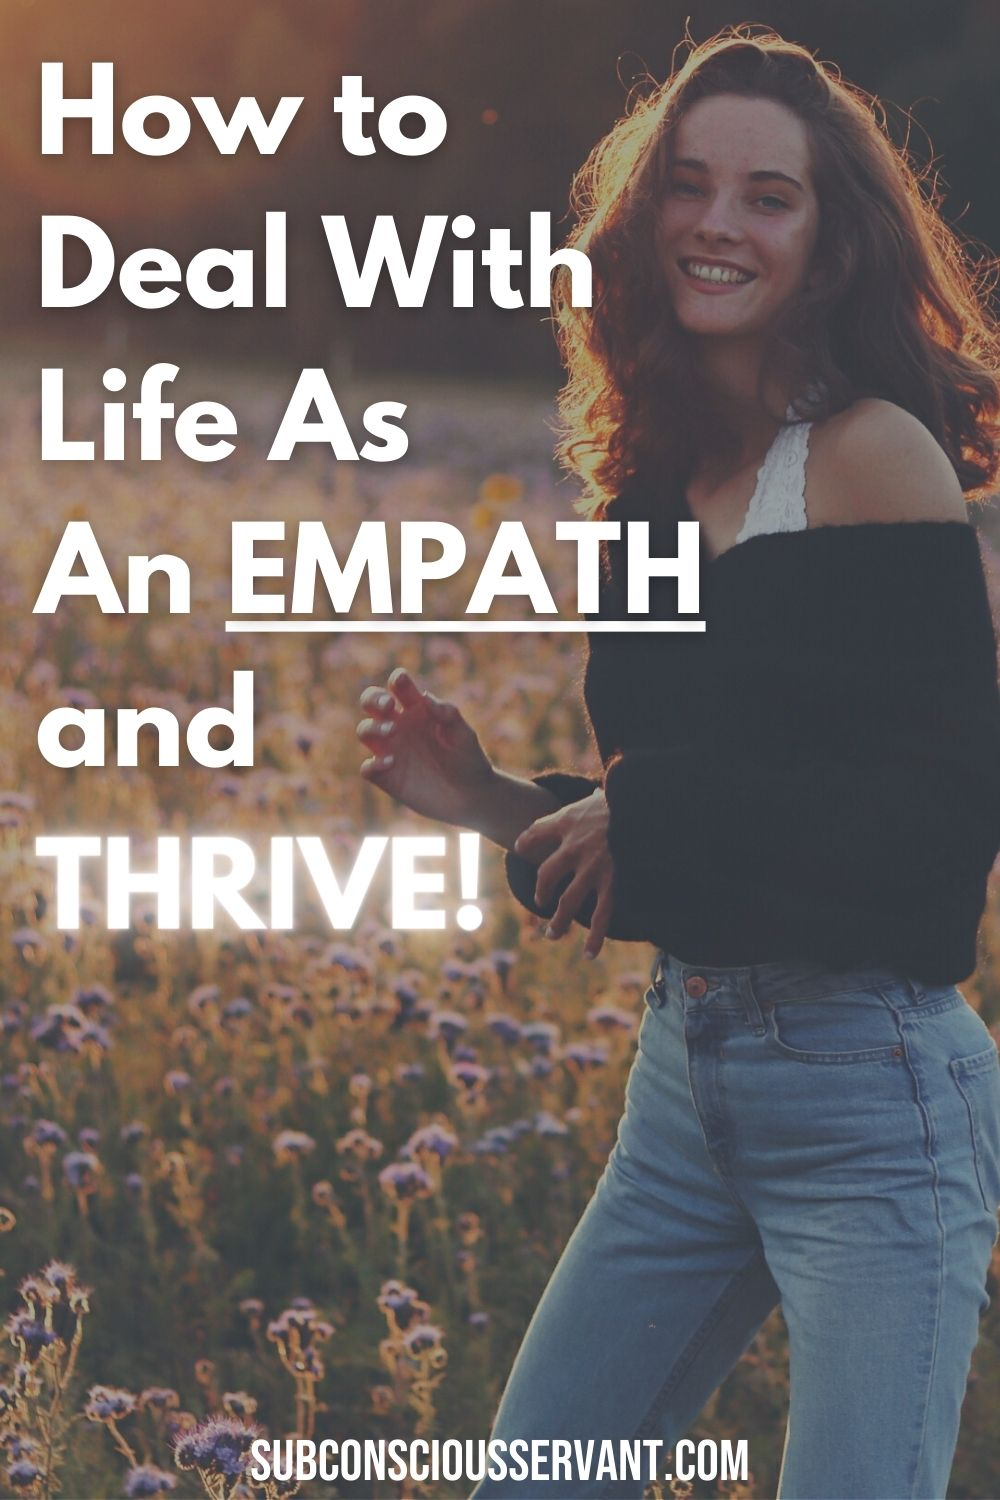 How to Deal With Life As An EMPATH and THRIVE!